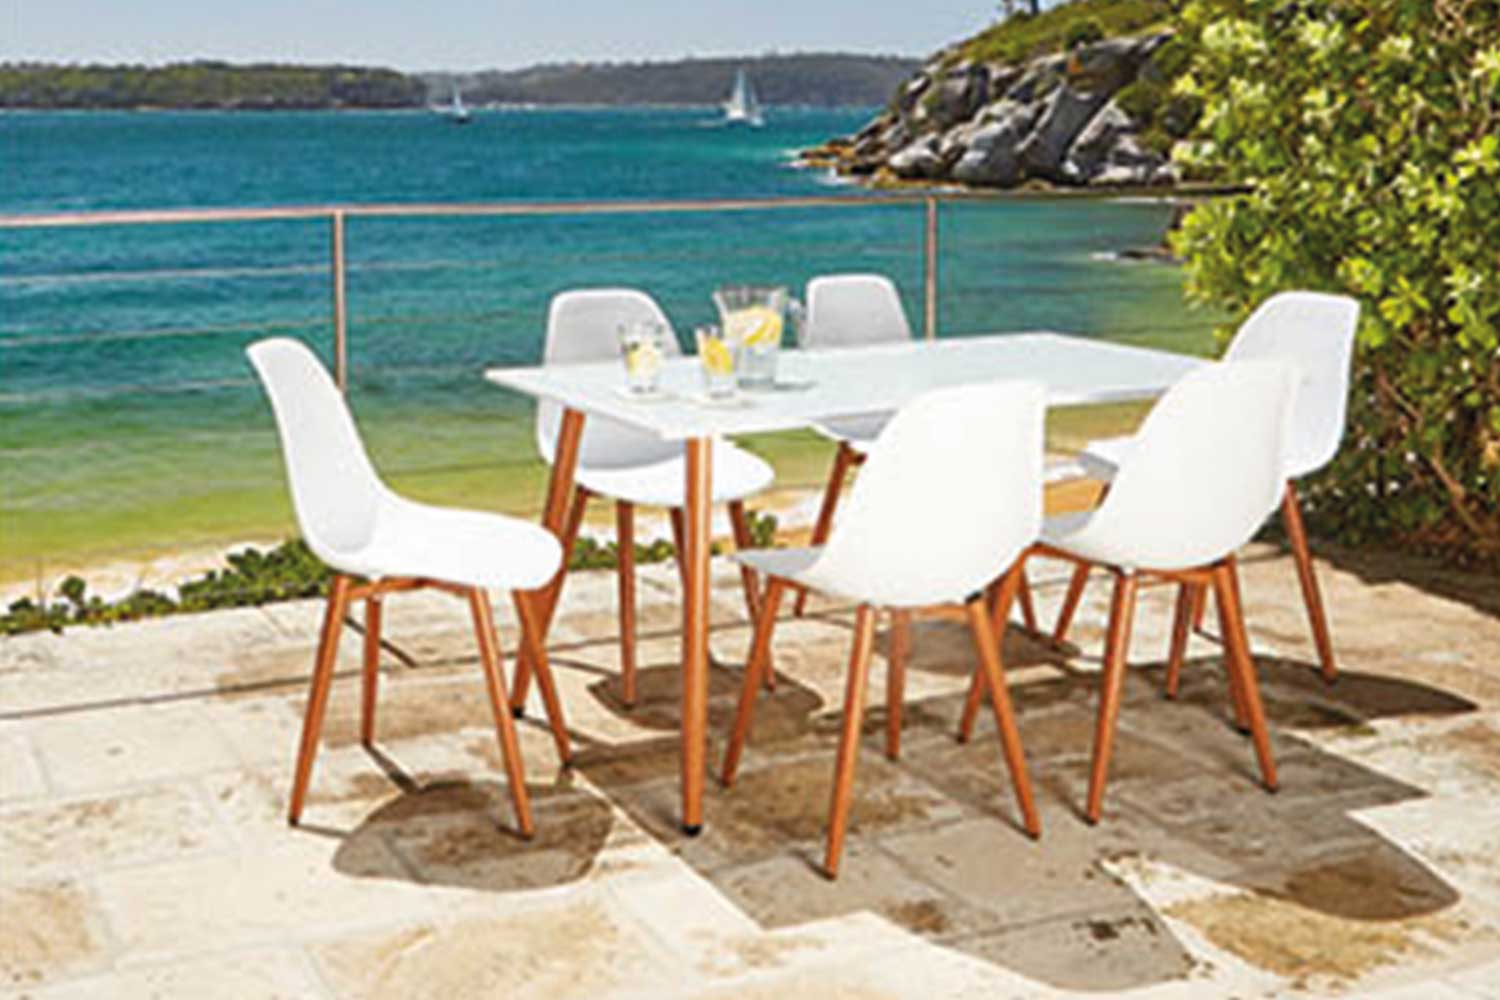 Astonishing Soak Up The Last Of Summer With Aldis Latest Special Buys Gmtry Best Dining Table And Chair Ideas Images Gmtryco